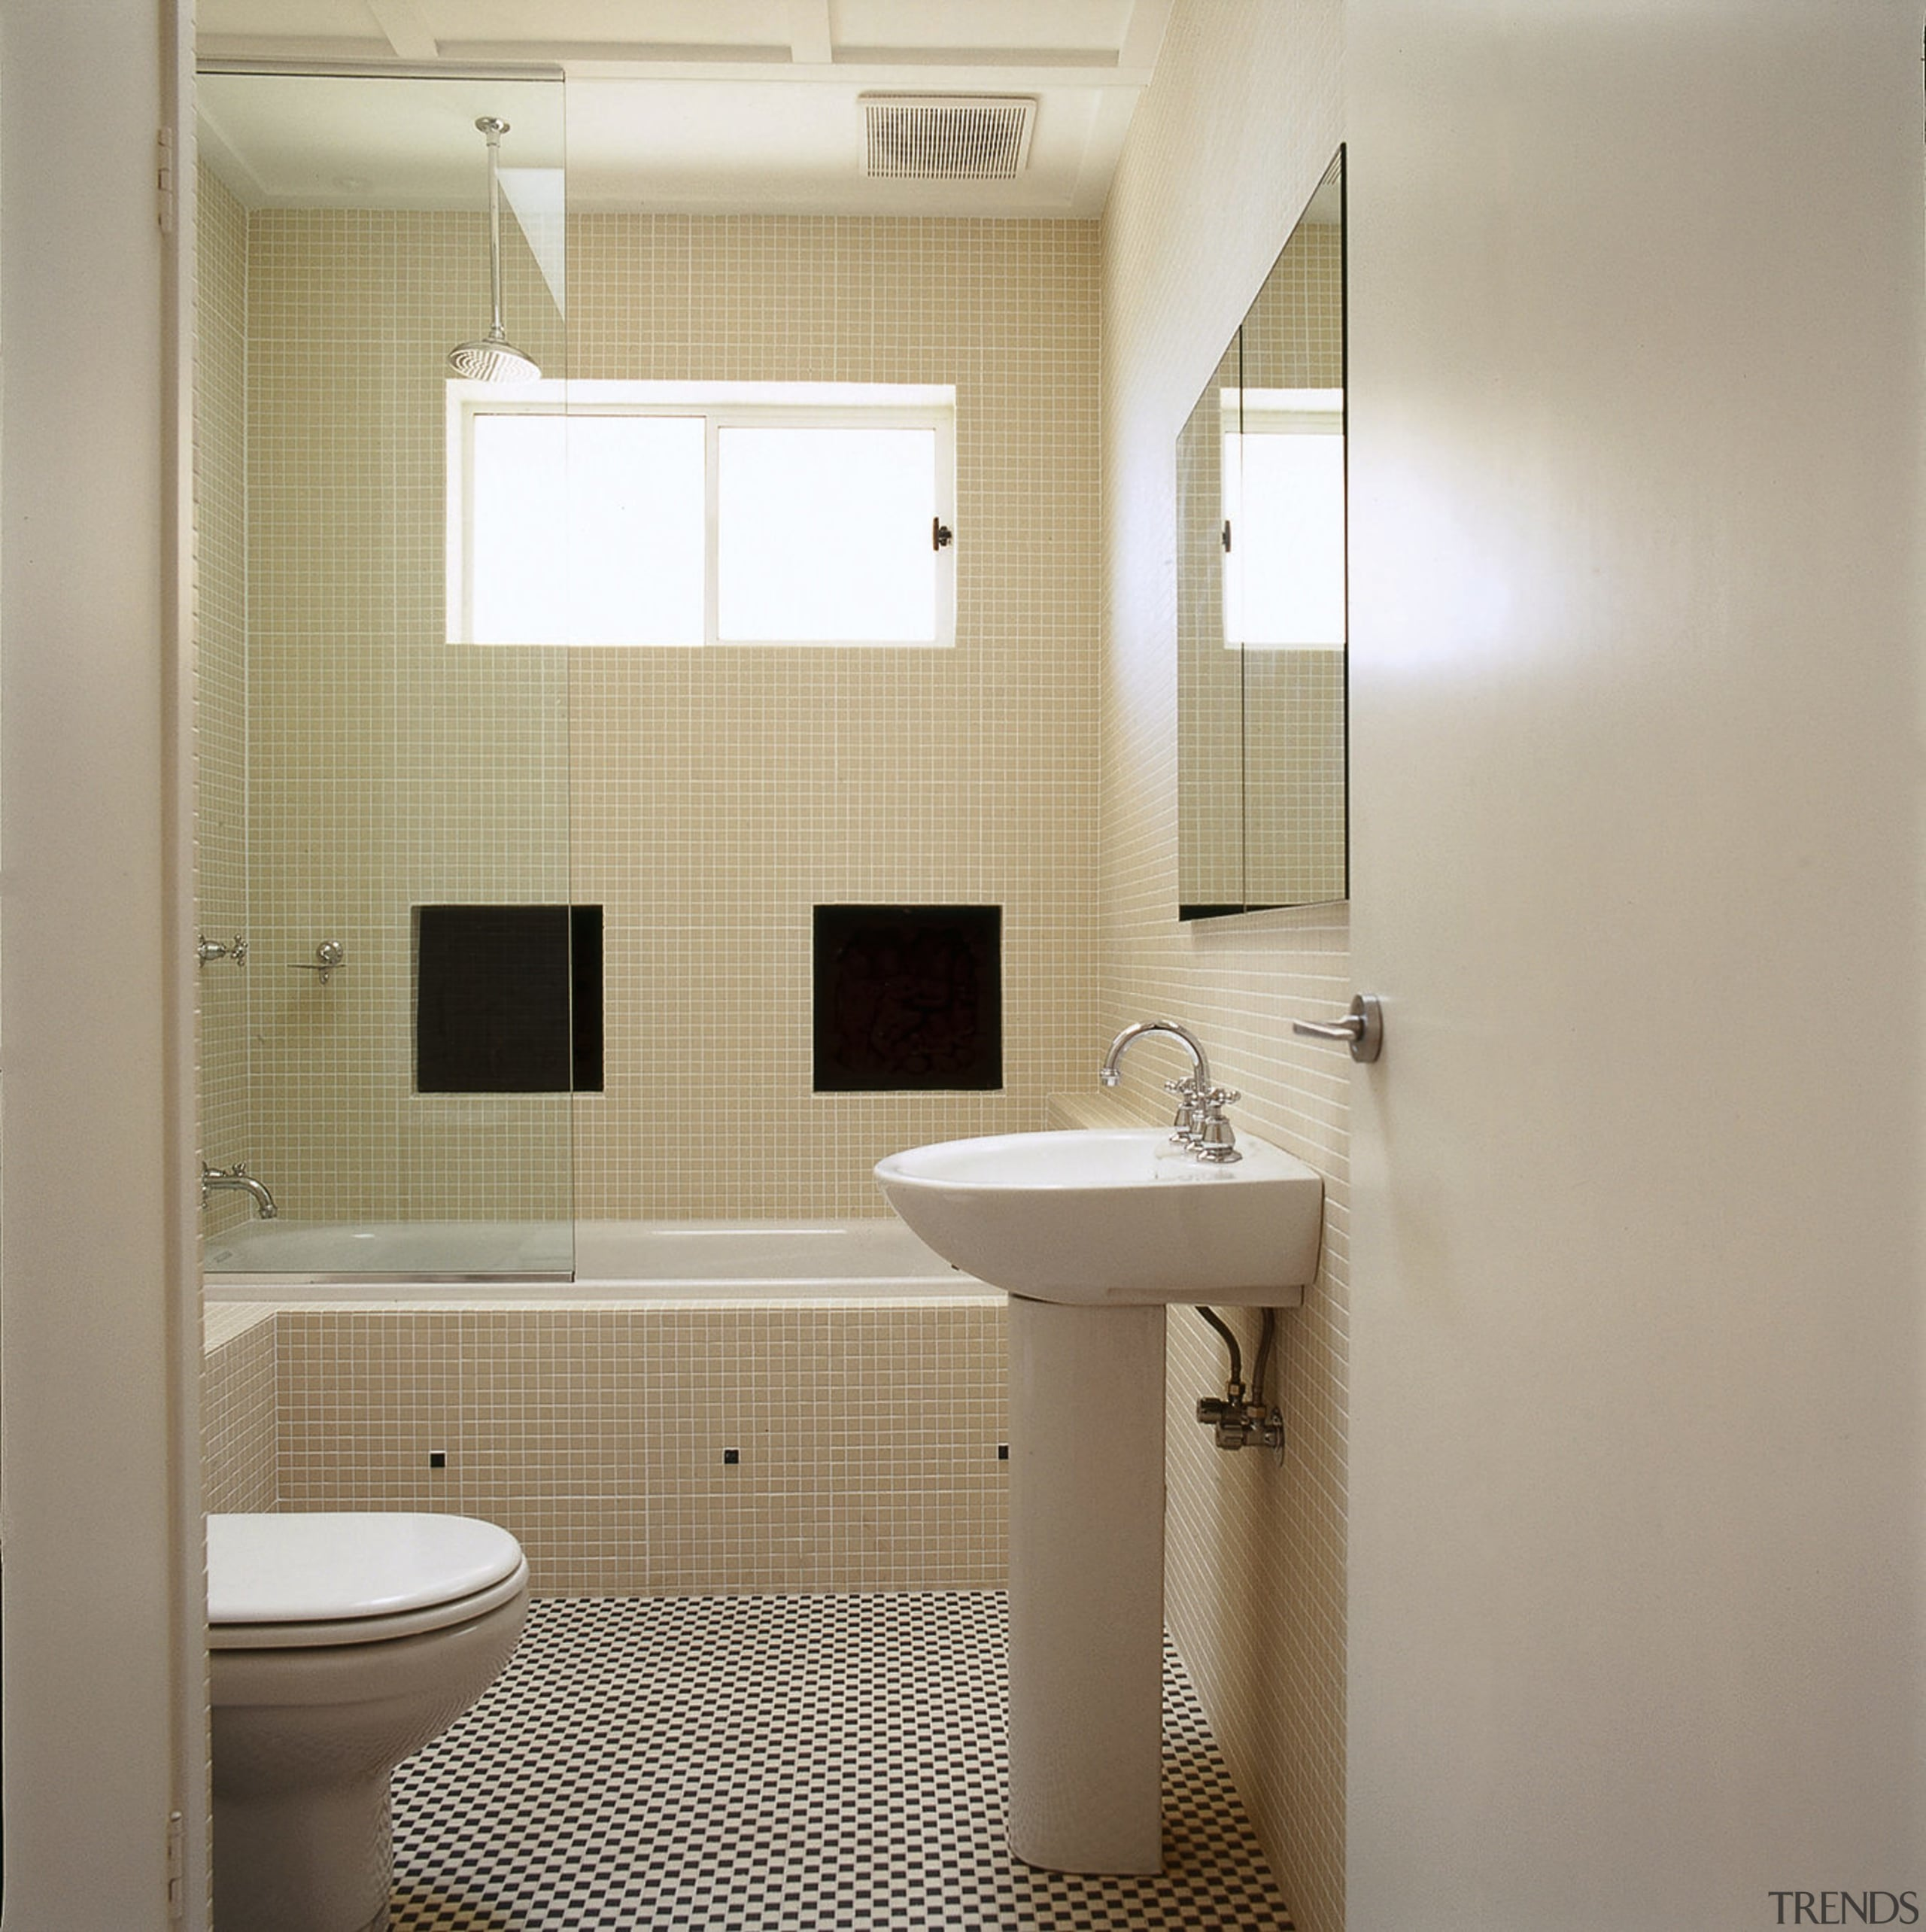 Cream Bathroom With Tiled Walls And Gallery 3 Trends